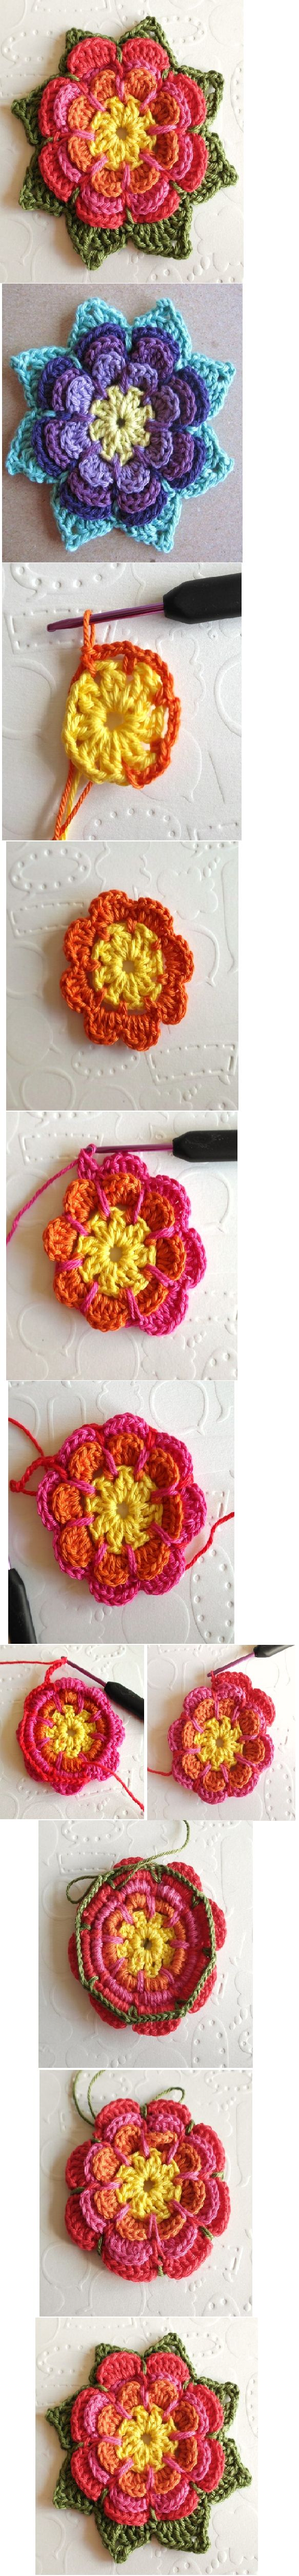 flower crochet motif - quick tutorial! Love this pin's format.. can never have enough of these photo tutorials, and this one also has some interesting color combo ideas.